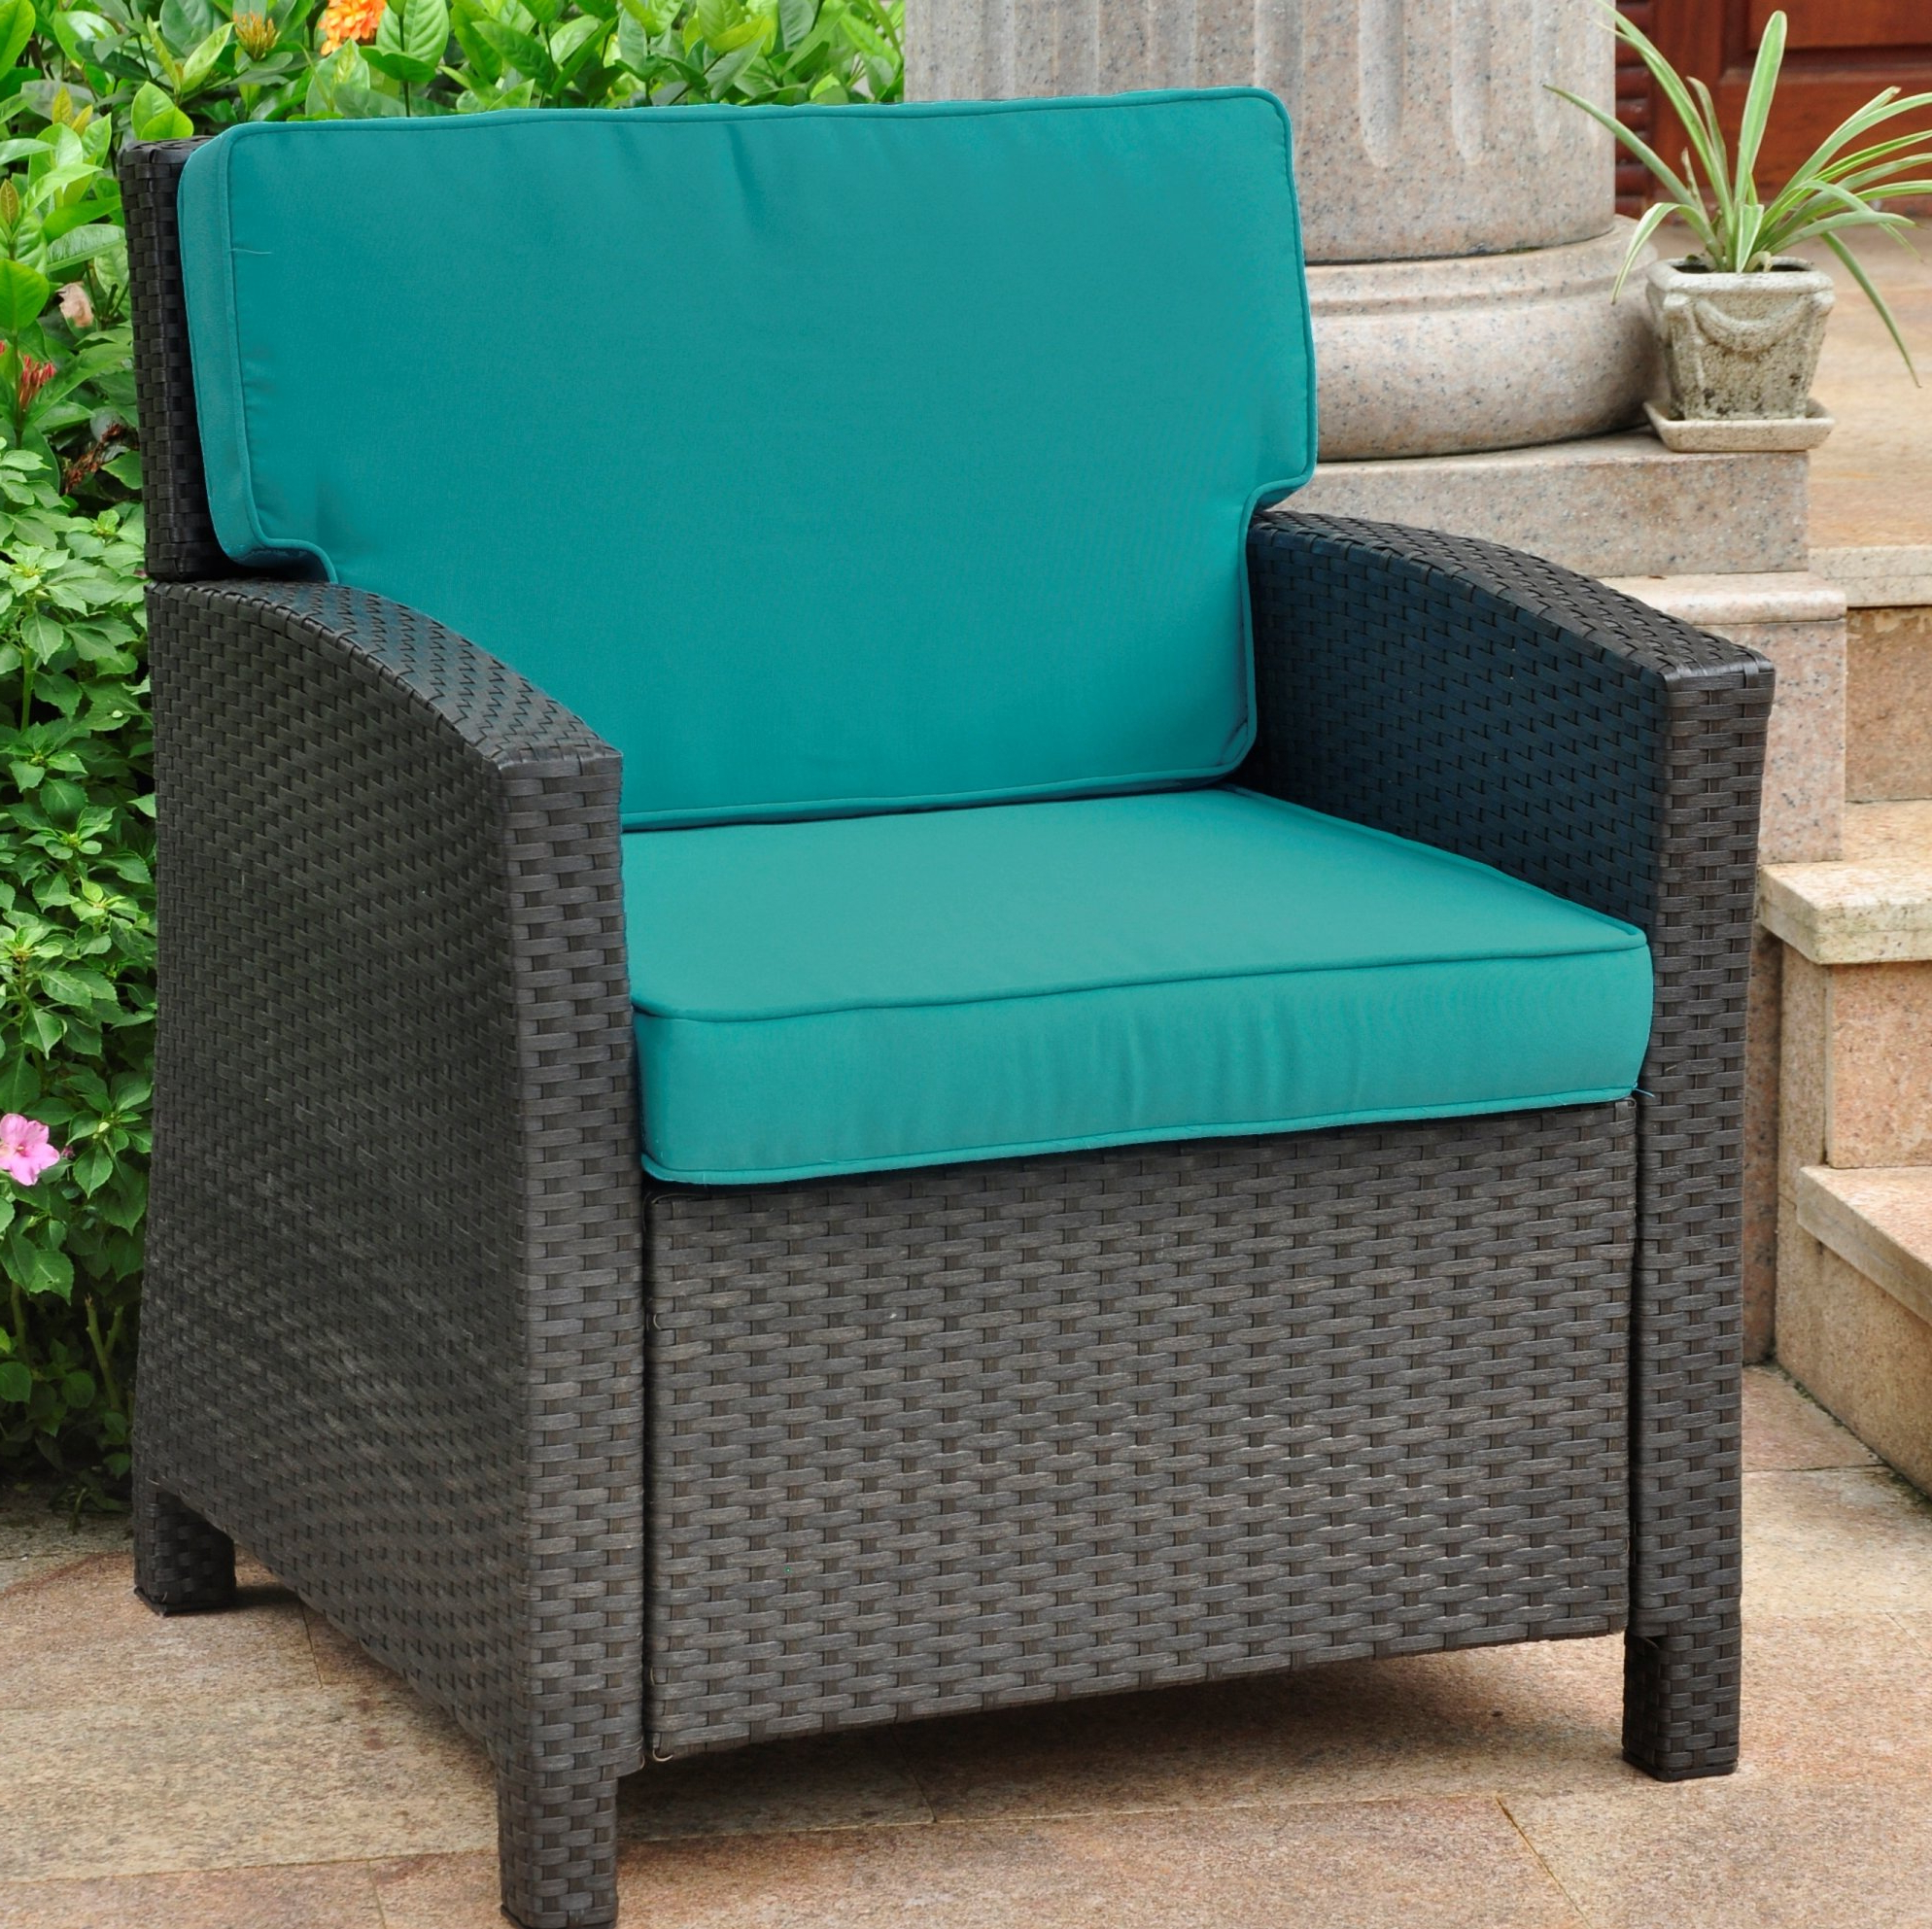 Stapleton Wicker Resin Patio Sofas With Cushions With Regard To 2020 Charlton Home Stapleton Wicker Resin Contemporary Patio Chair With Cushion (View 16 of 20)